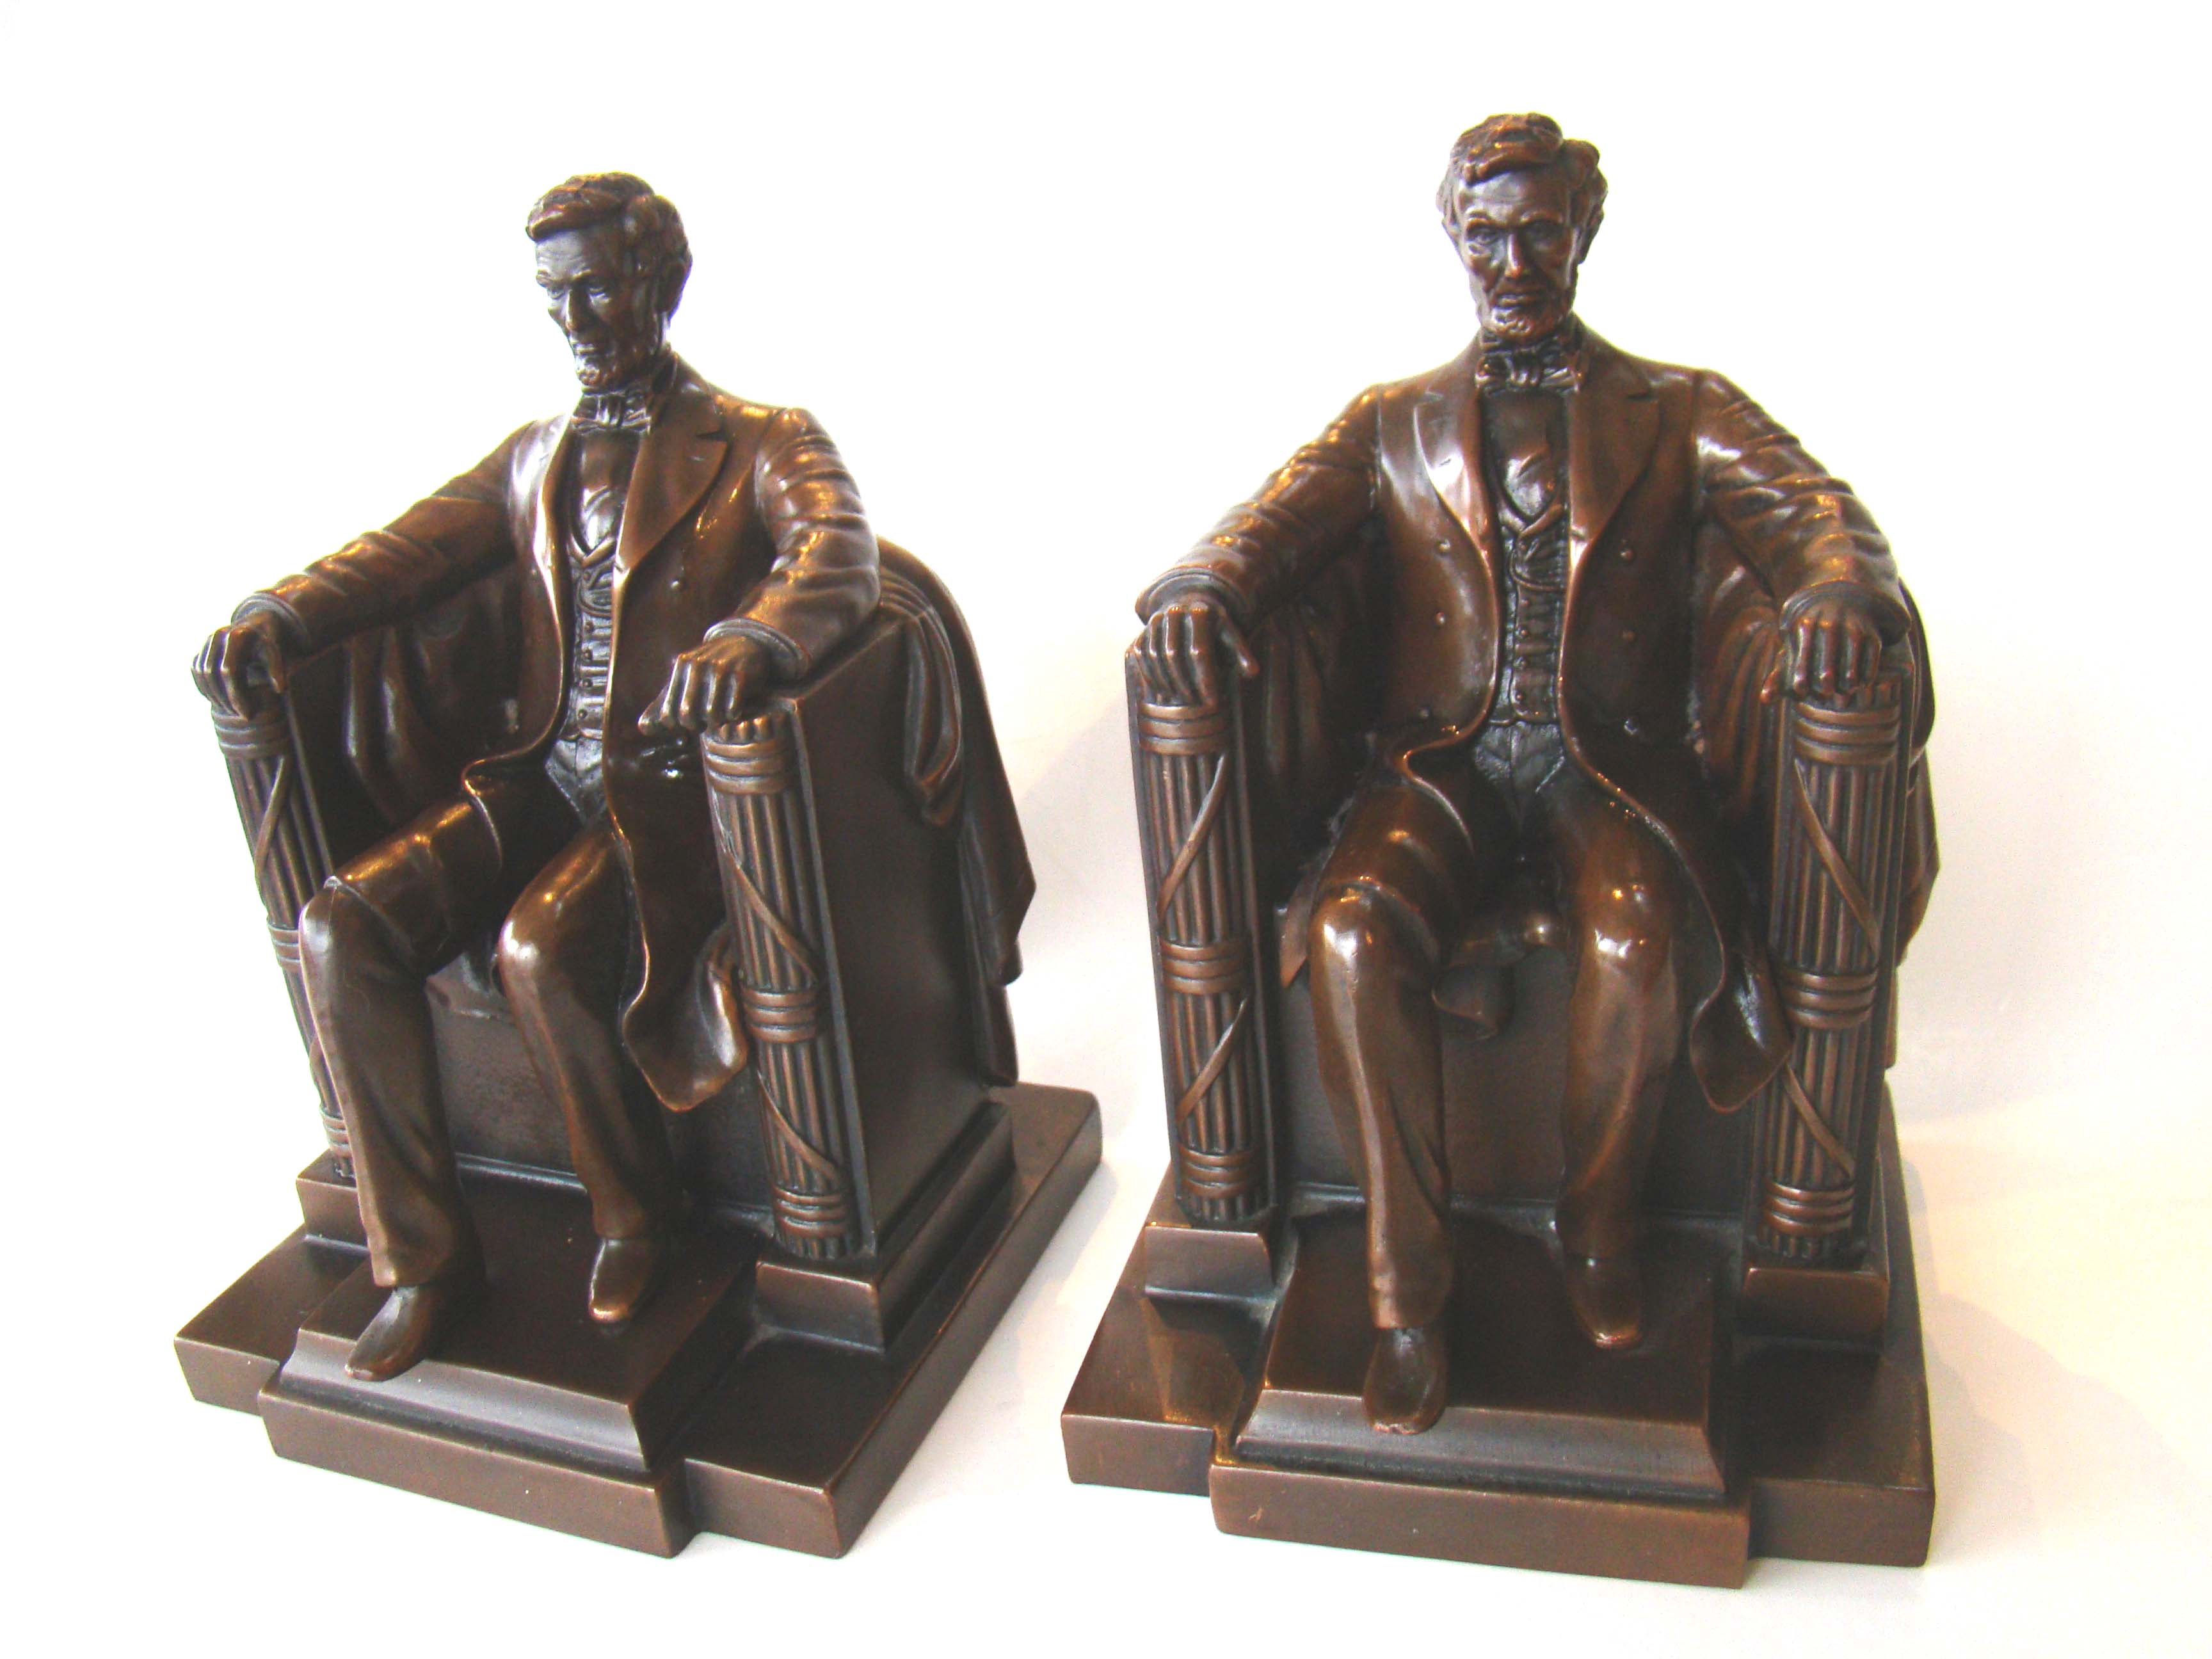 click to view detailed description of A fine pair of Lincoln bookends made by Jennings Brothers of Bridgeport, CT, circa 1925